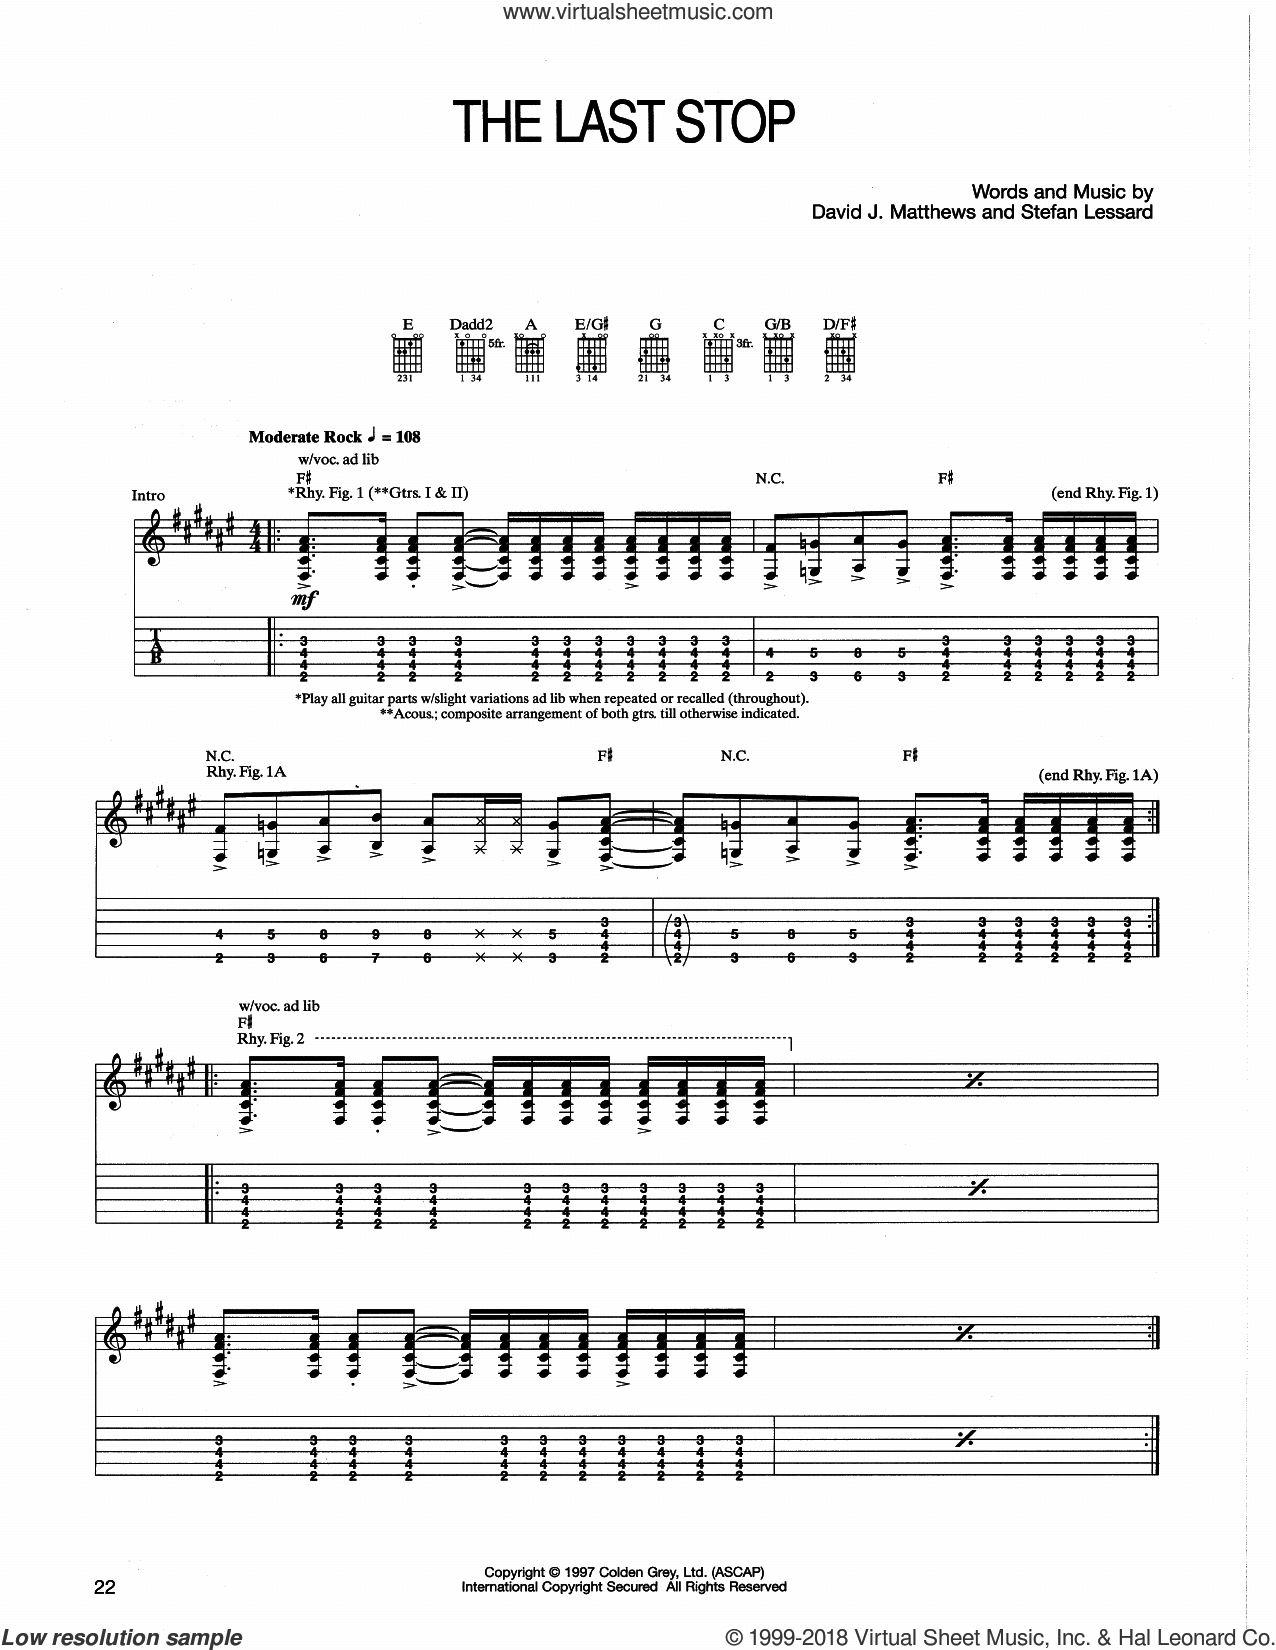 The Last Stop sheet music for guitar (tablature) by Dave Matthews Band and Stefan Lessard, intermediate